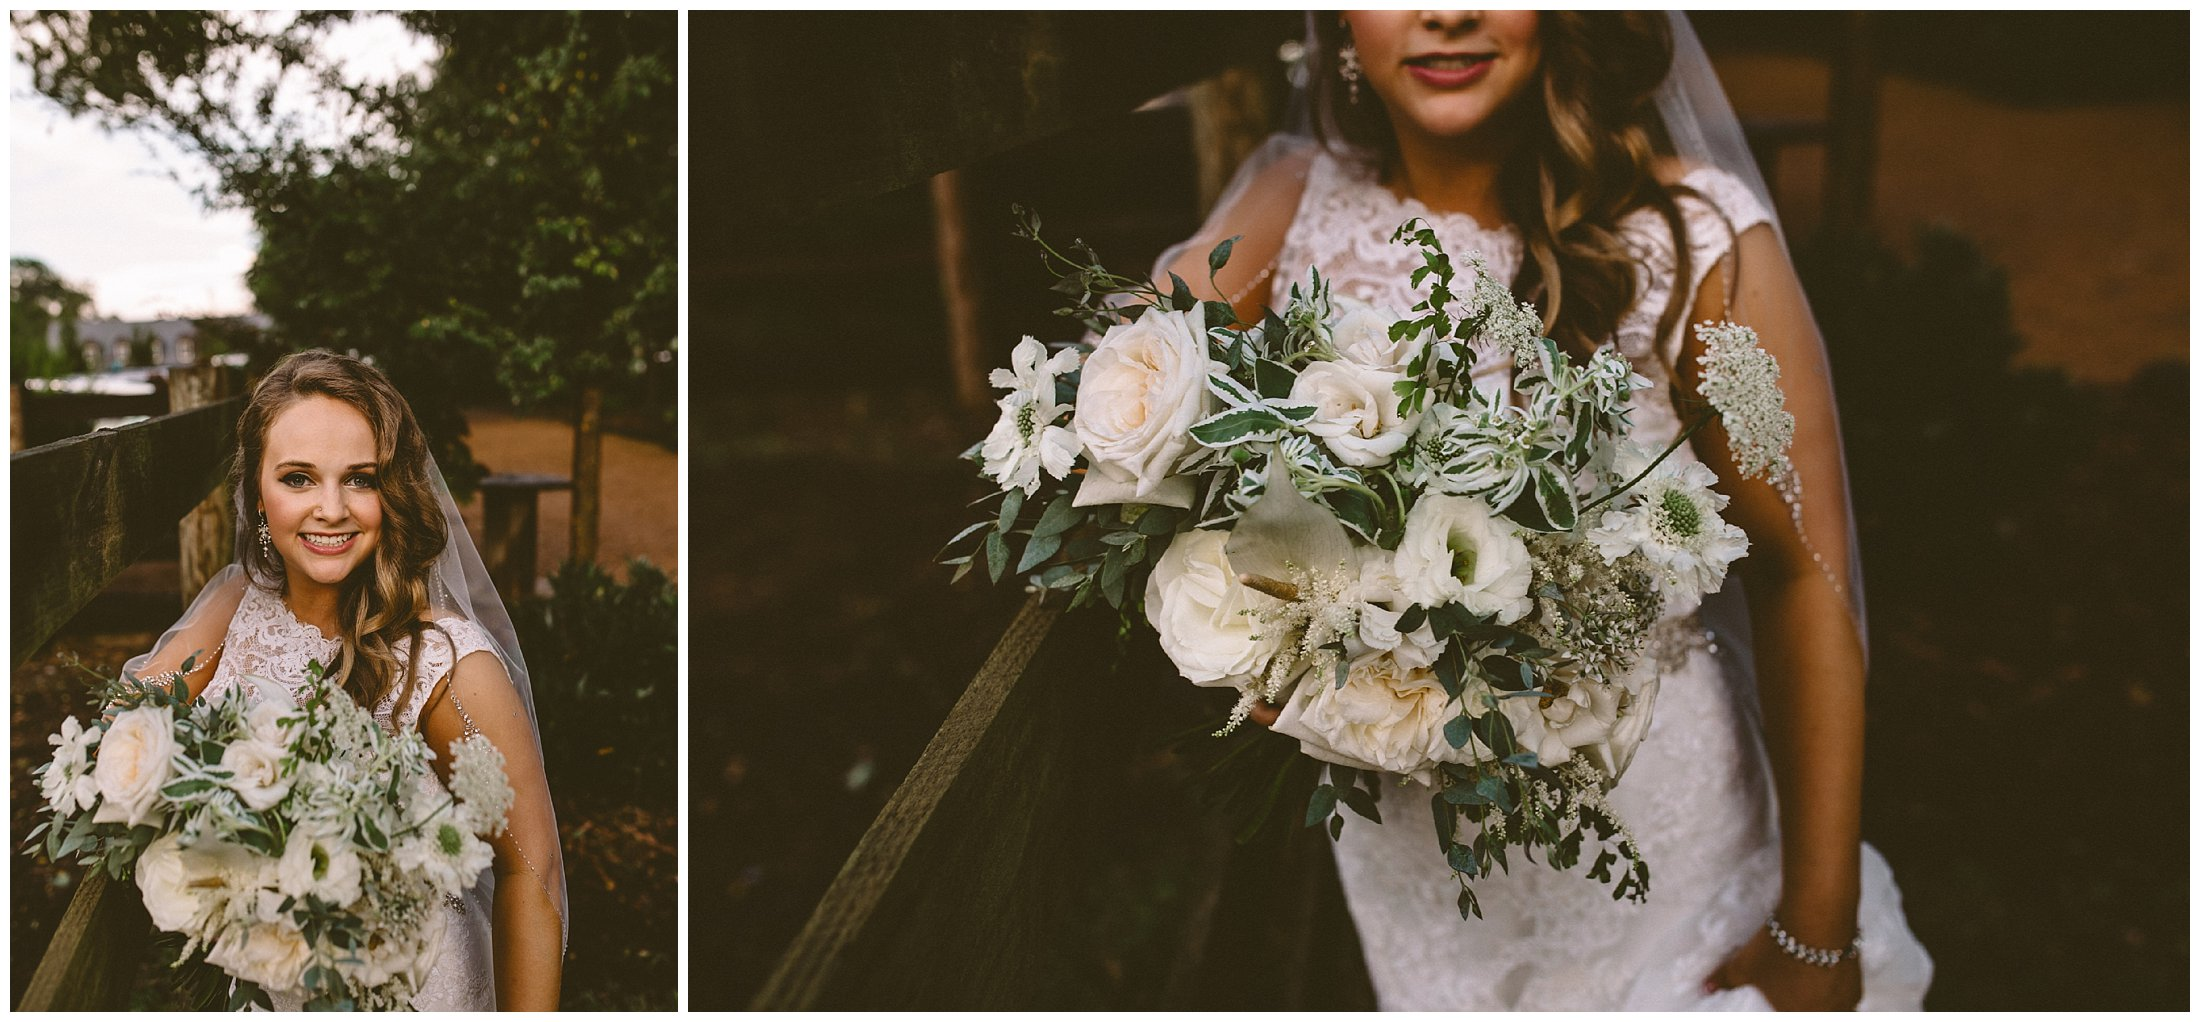 H O S T E D  by  Long Hollow Gardens P H O T O S  by  Kate Sippi Photography